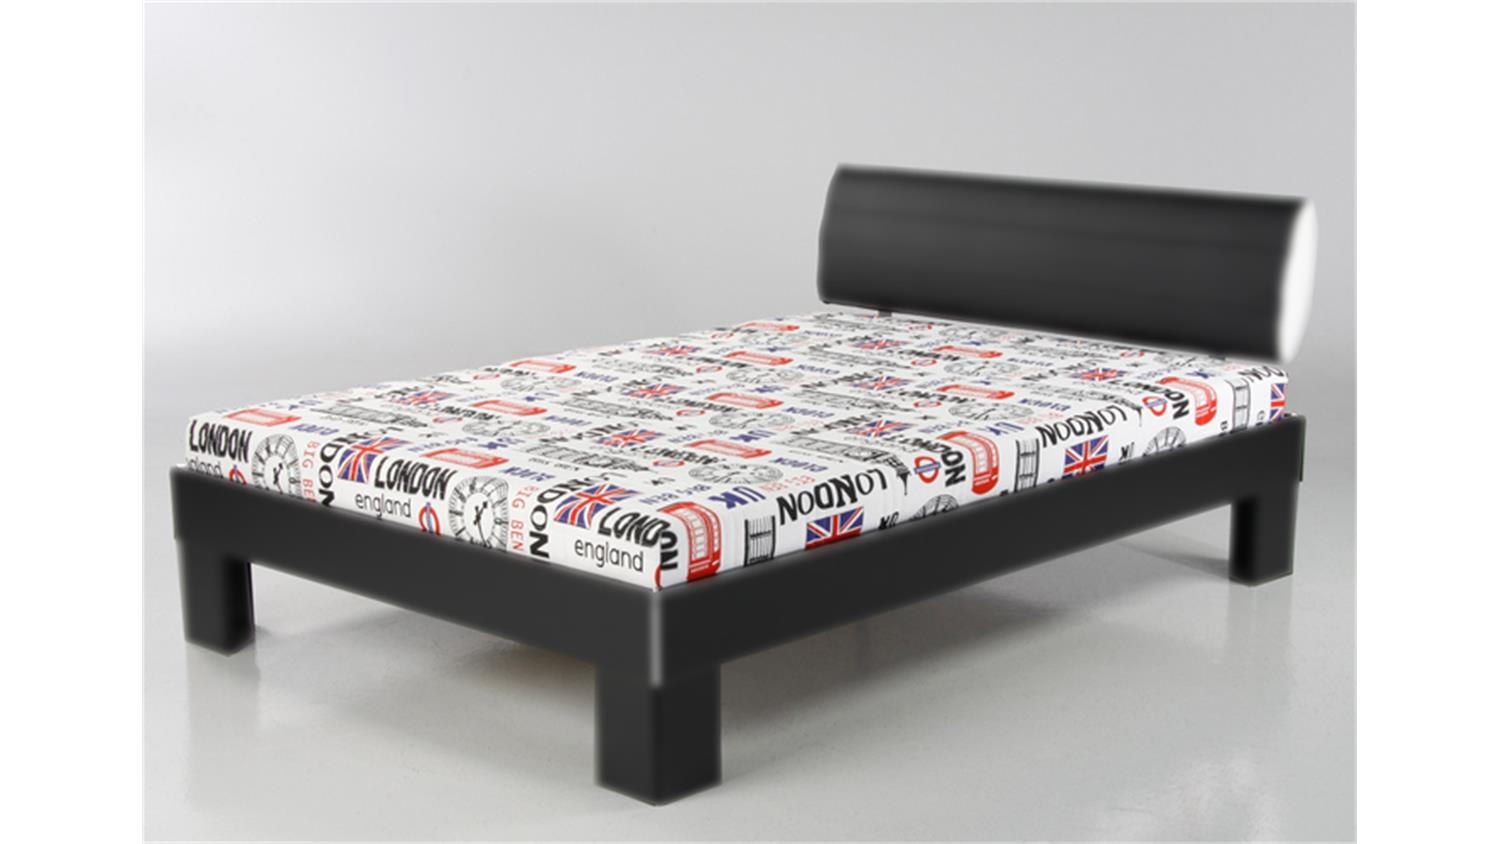 Futon Sessel Futonmatratze 140 X 200cm Bezug Design London